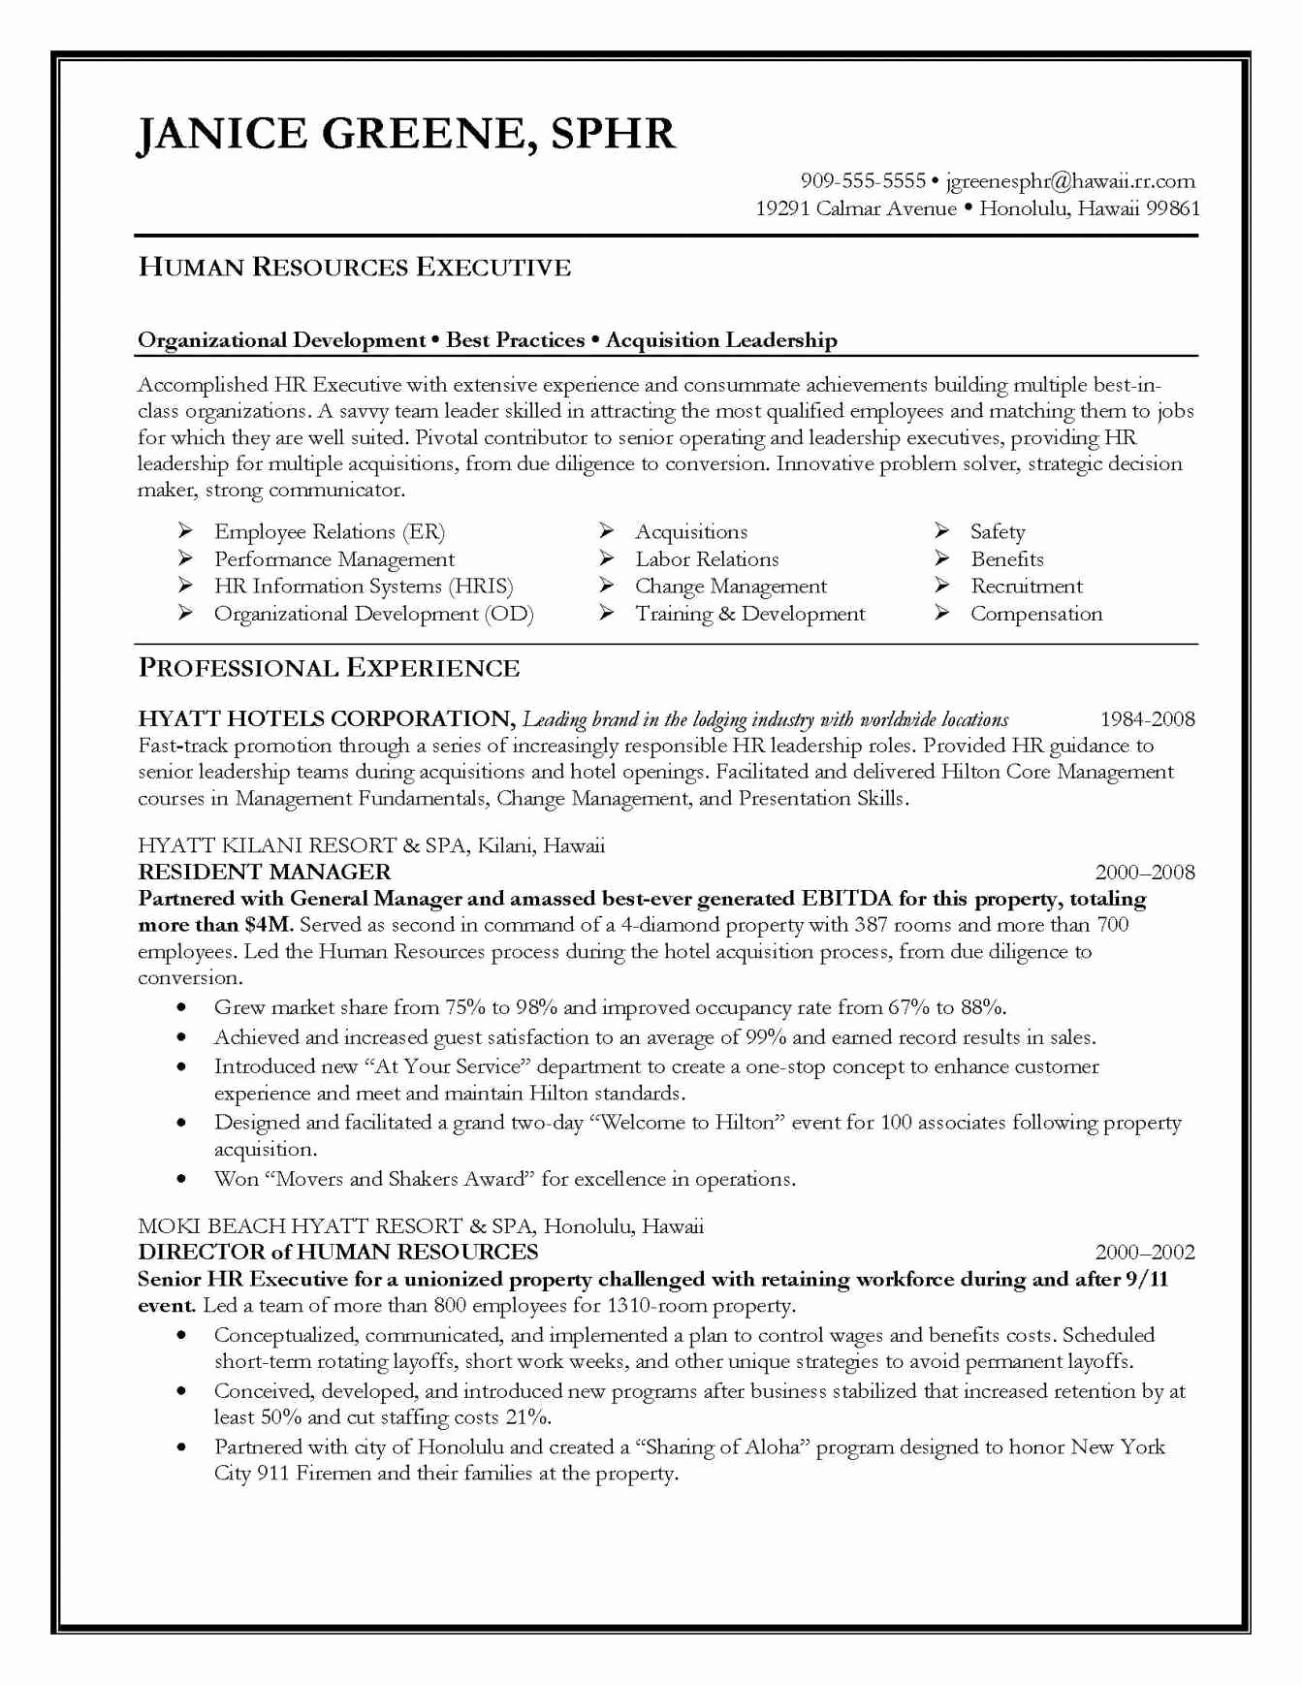 Career Change Objective Statements - Career Change Resume Sample Awesome Resume Objective Statement Entry